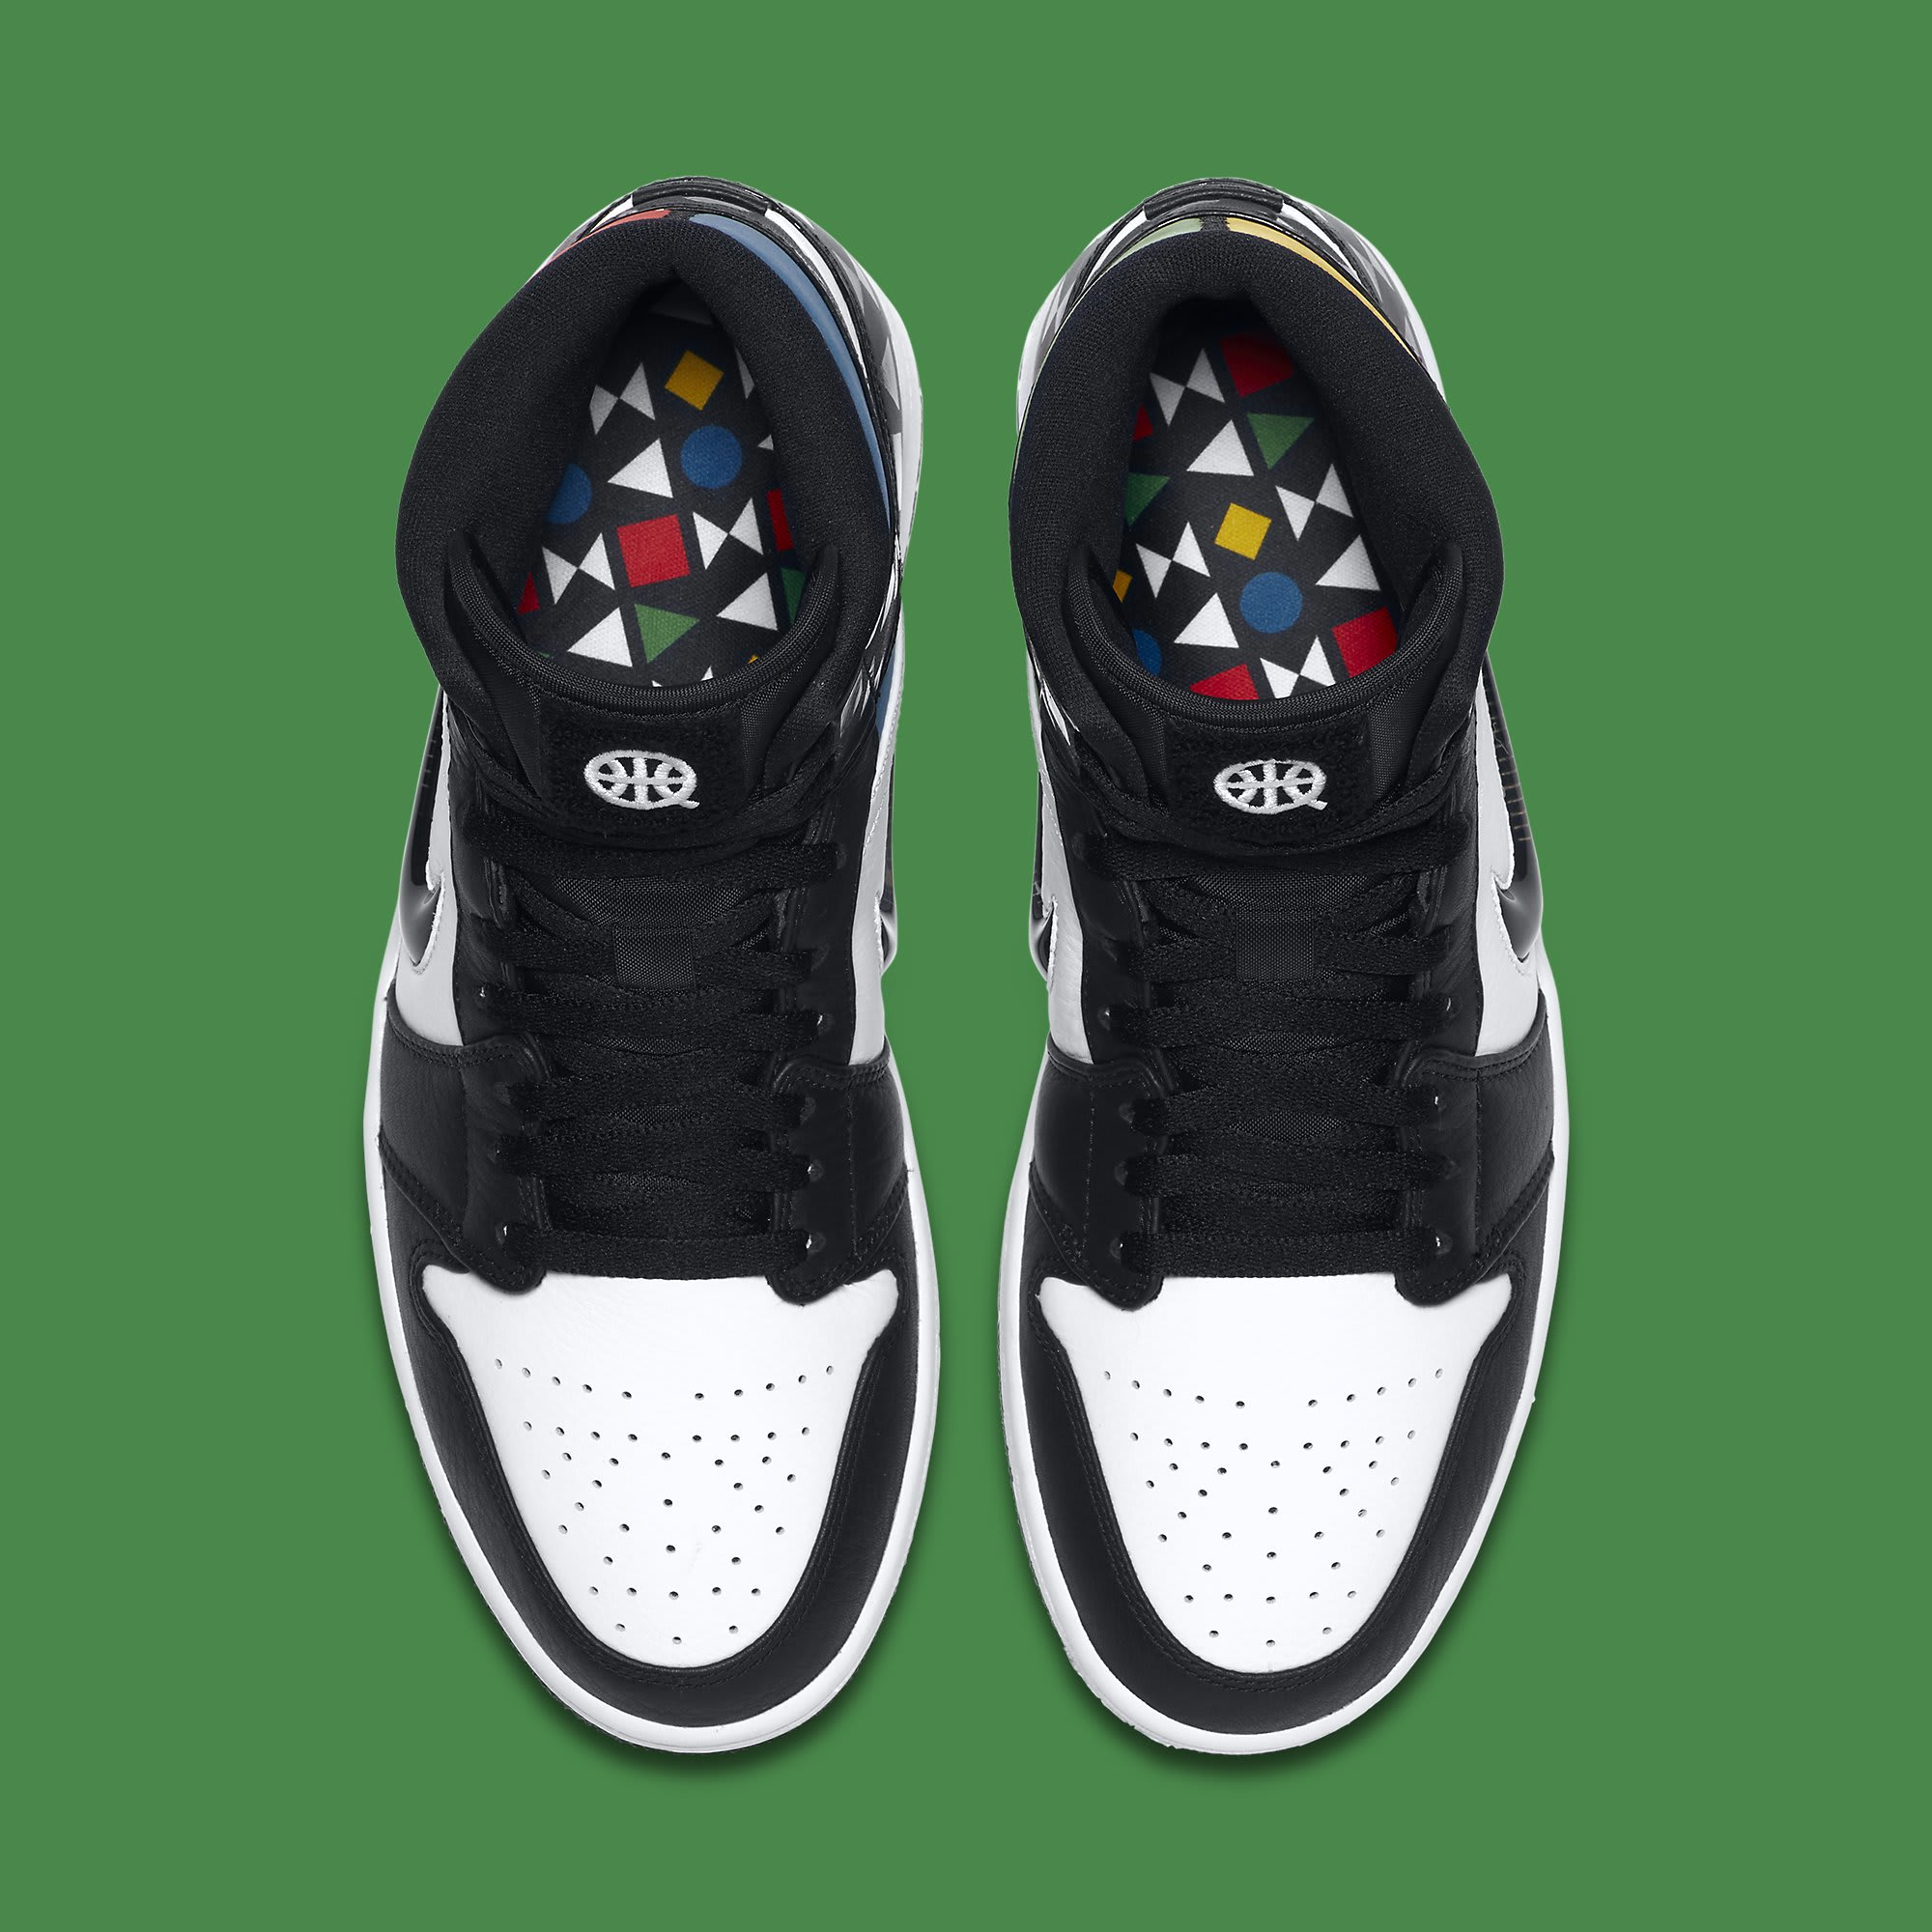 Air Jordan 1 Retro Mid 'Quai 54' CJ9219-001 Top